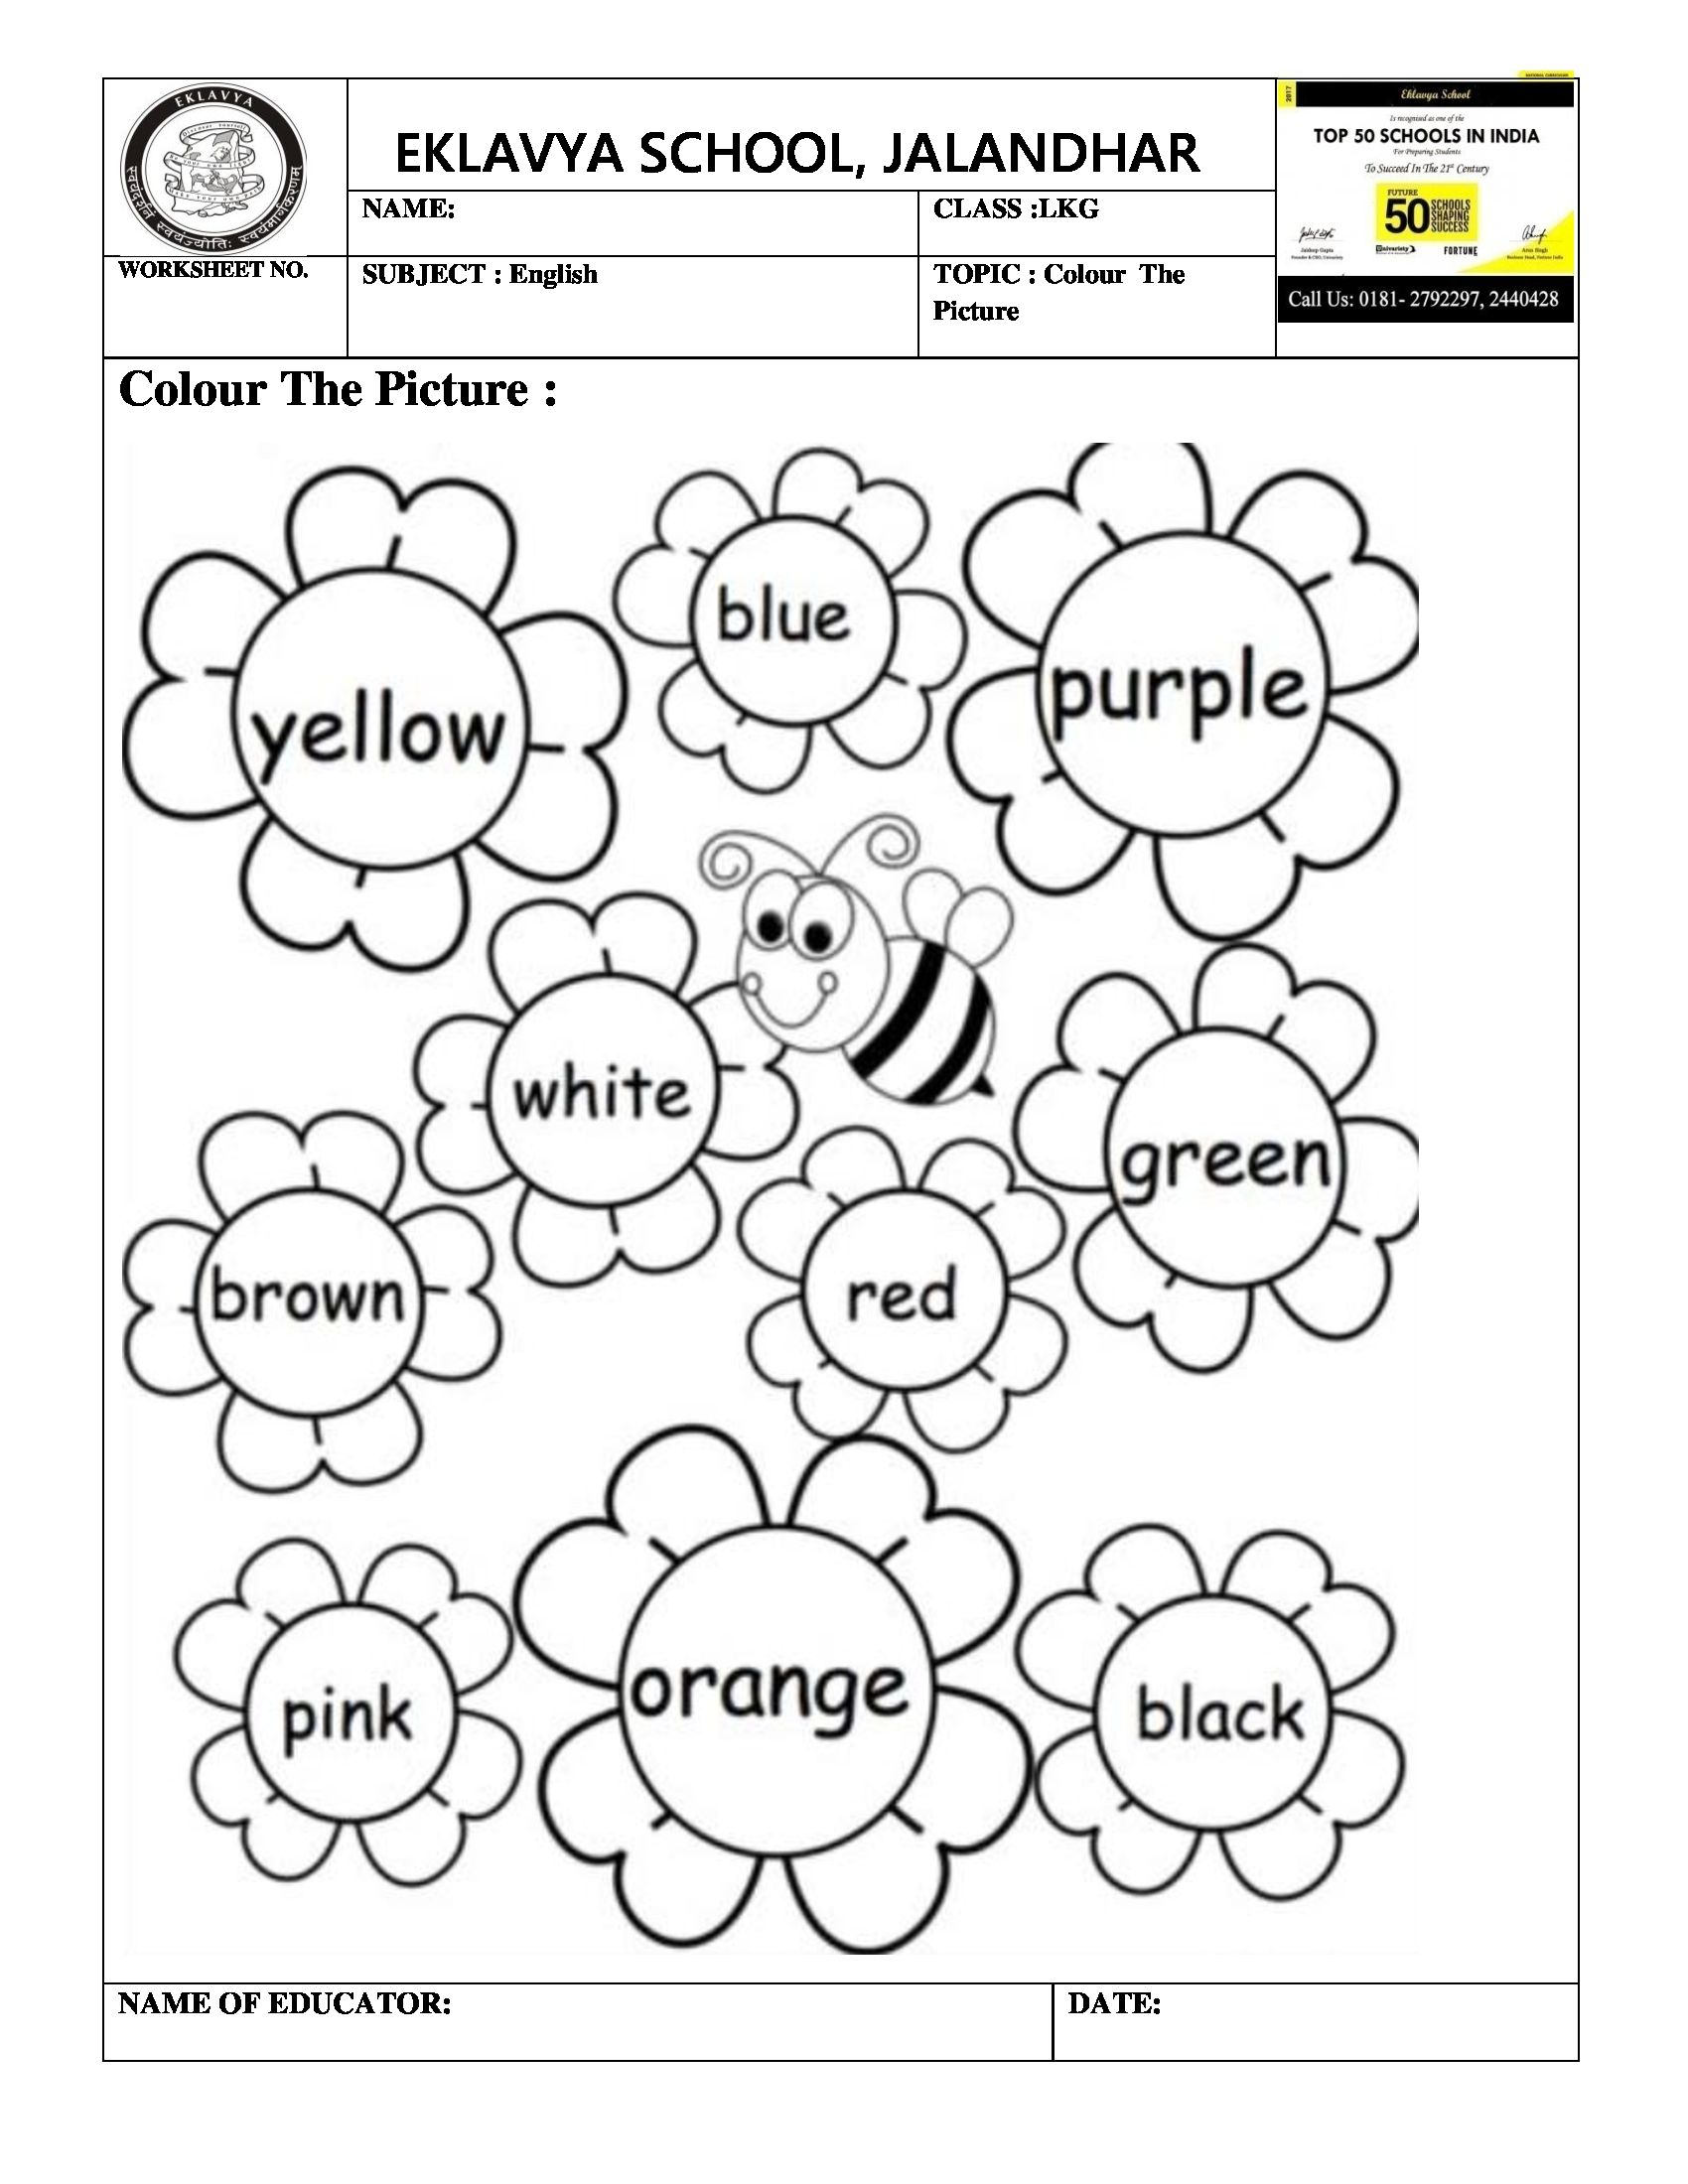 Colour the picture worksheet | Pink names, Color names ...